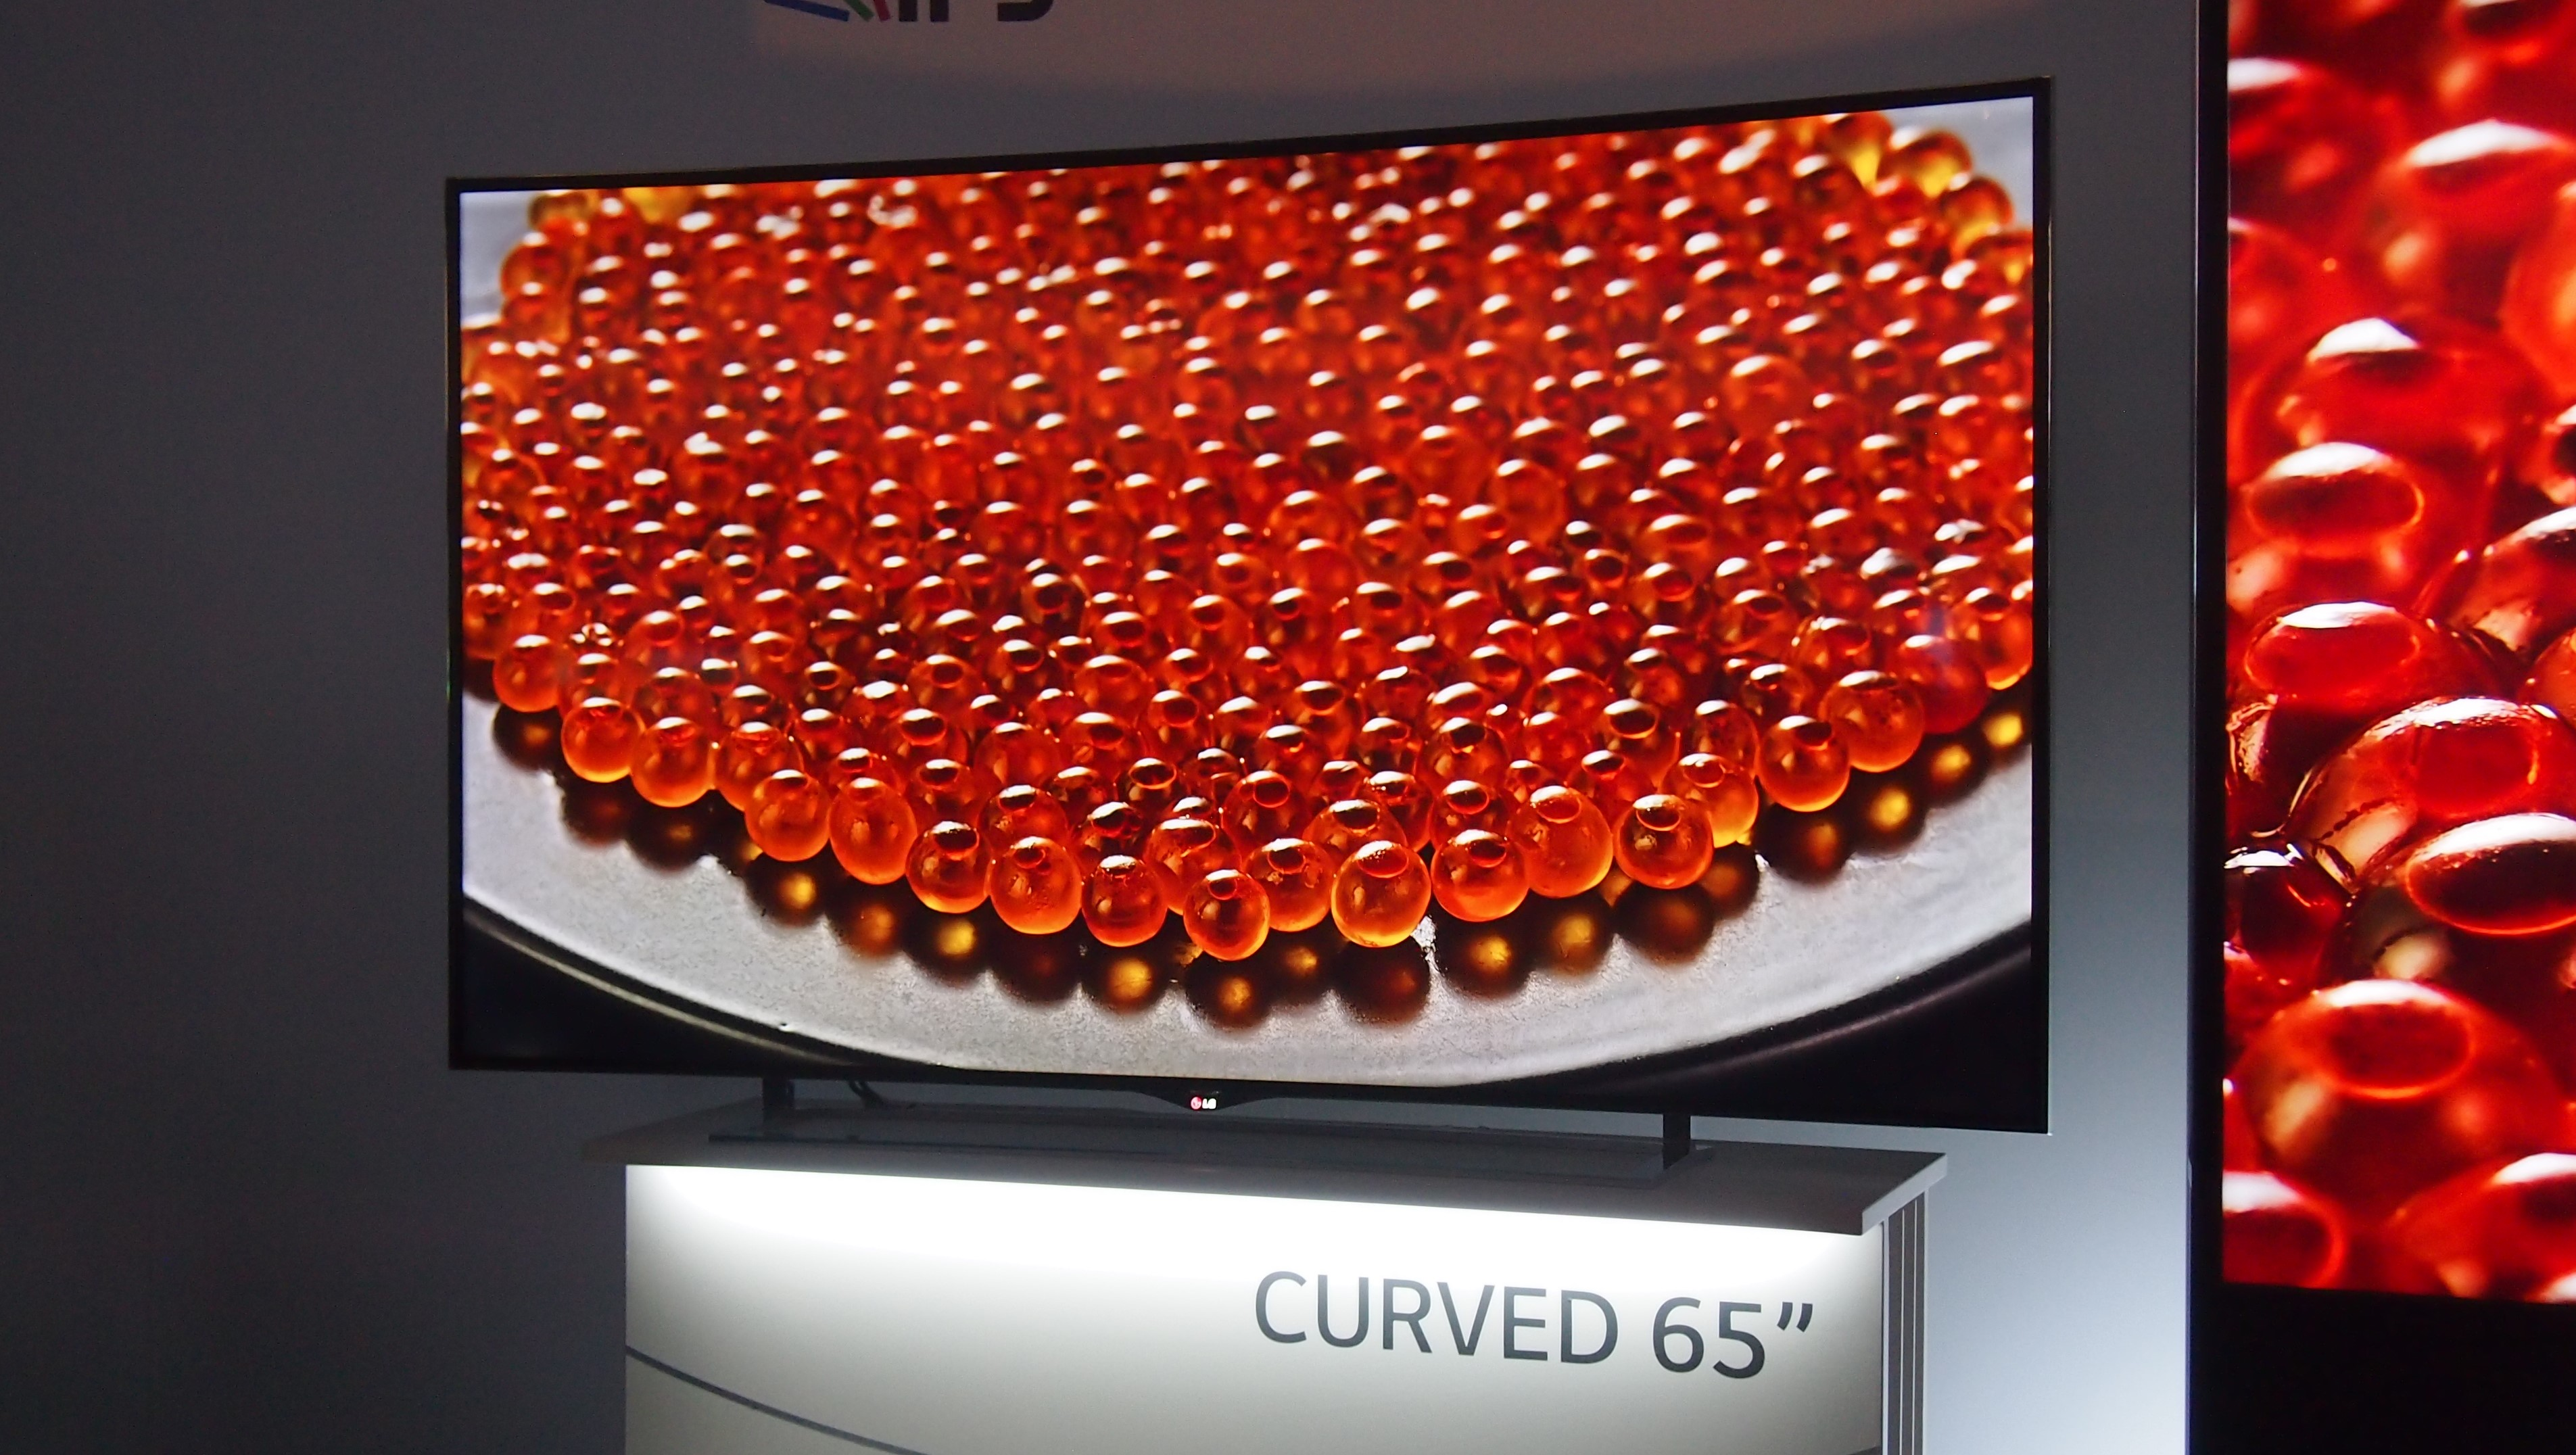 lgu0027s 105inch curved 5k tv will arrive this year for a price techradar - 65 Inch Curved Tv